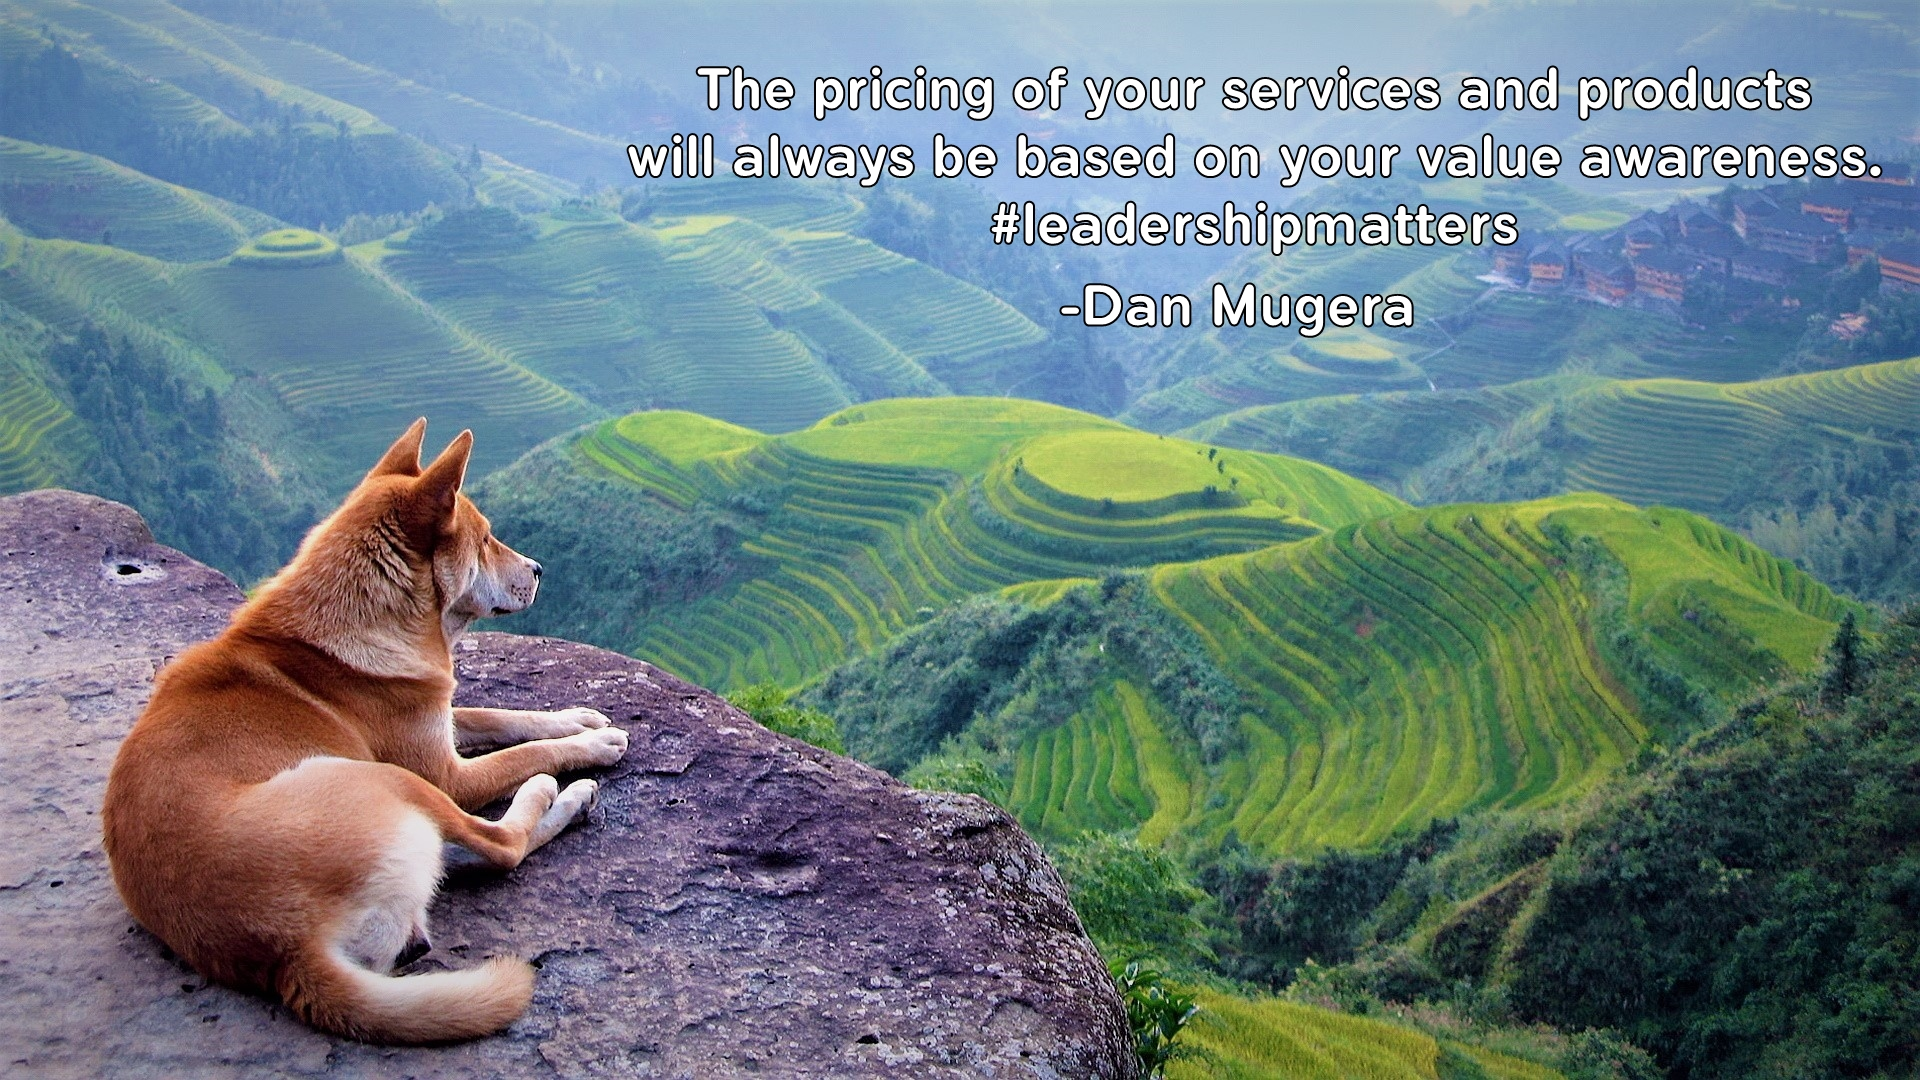 Quotes by Dan Mugera, life quotes, leadership quotes, awareness quotes